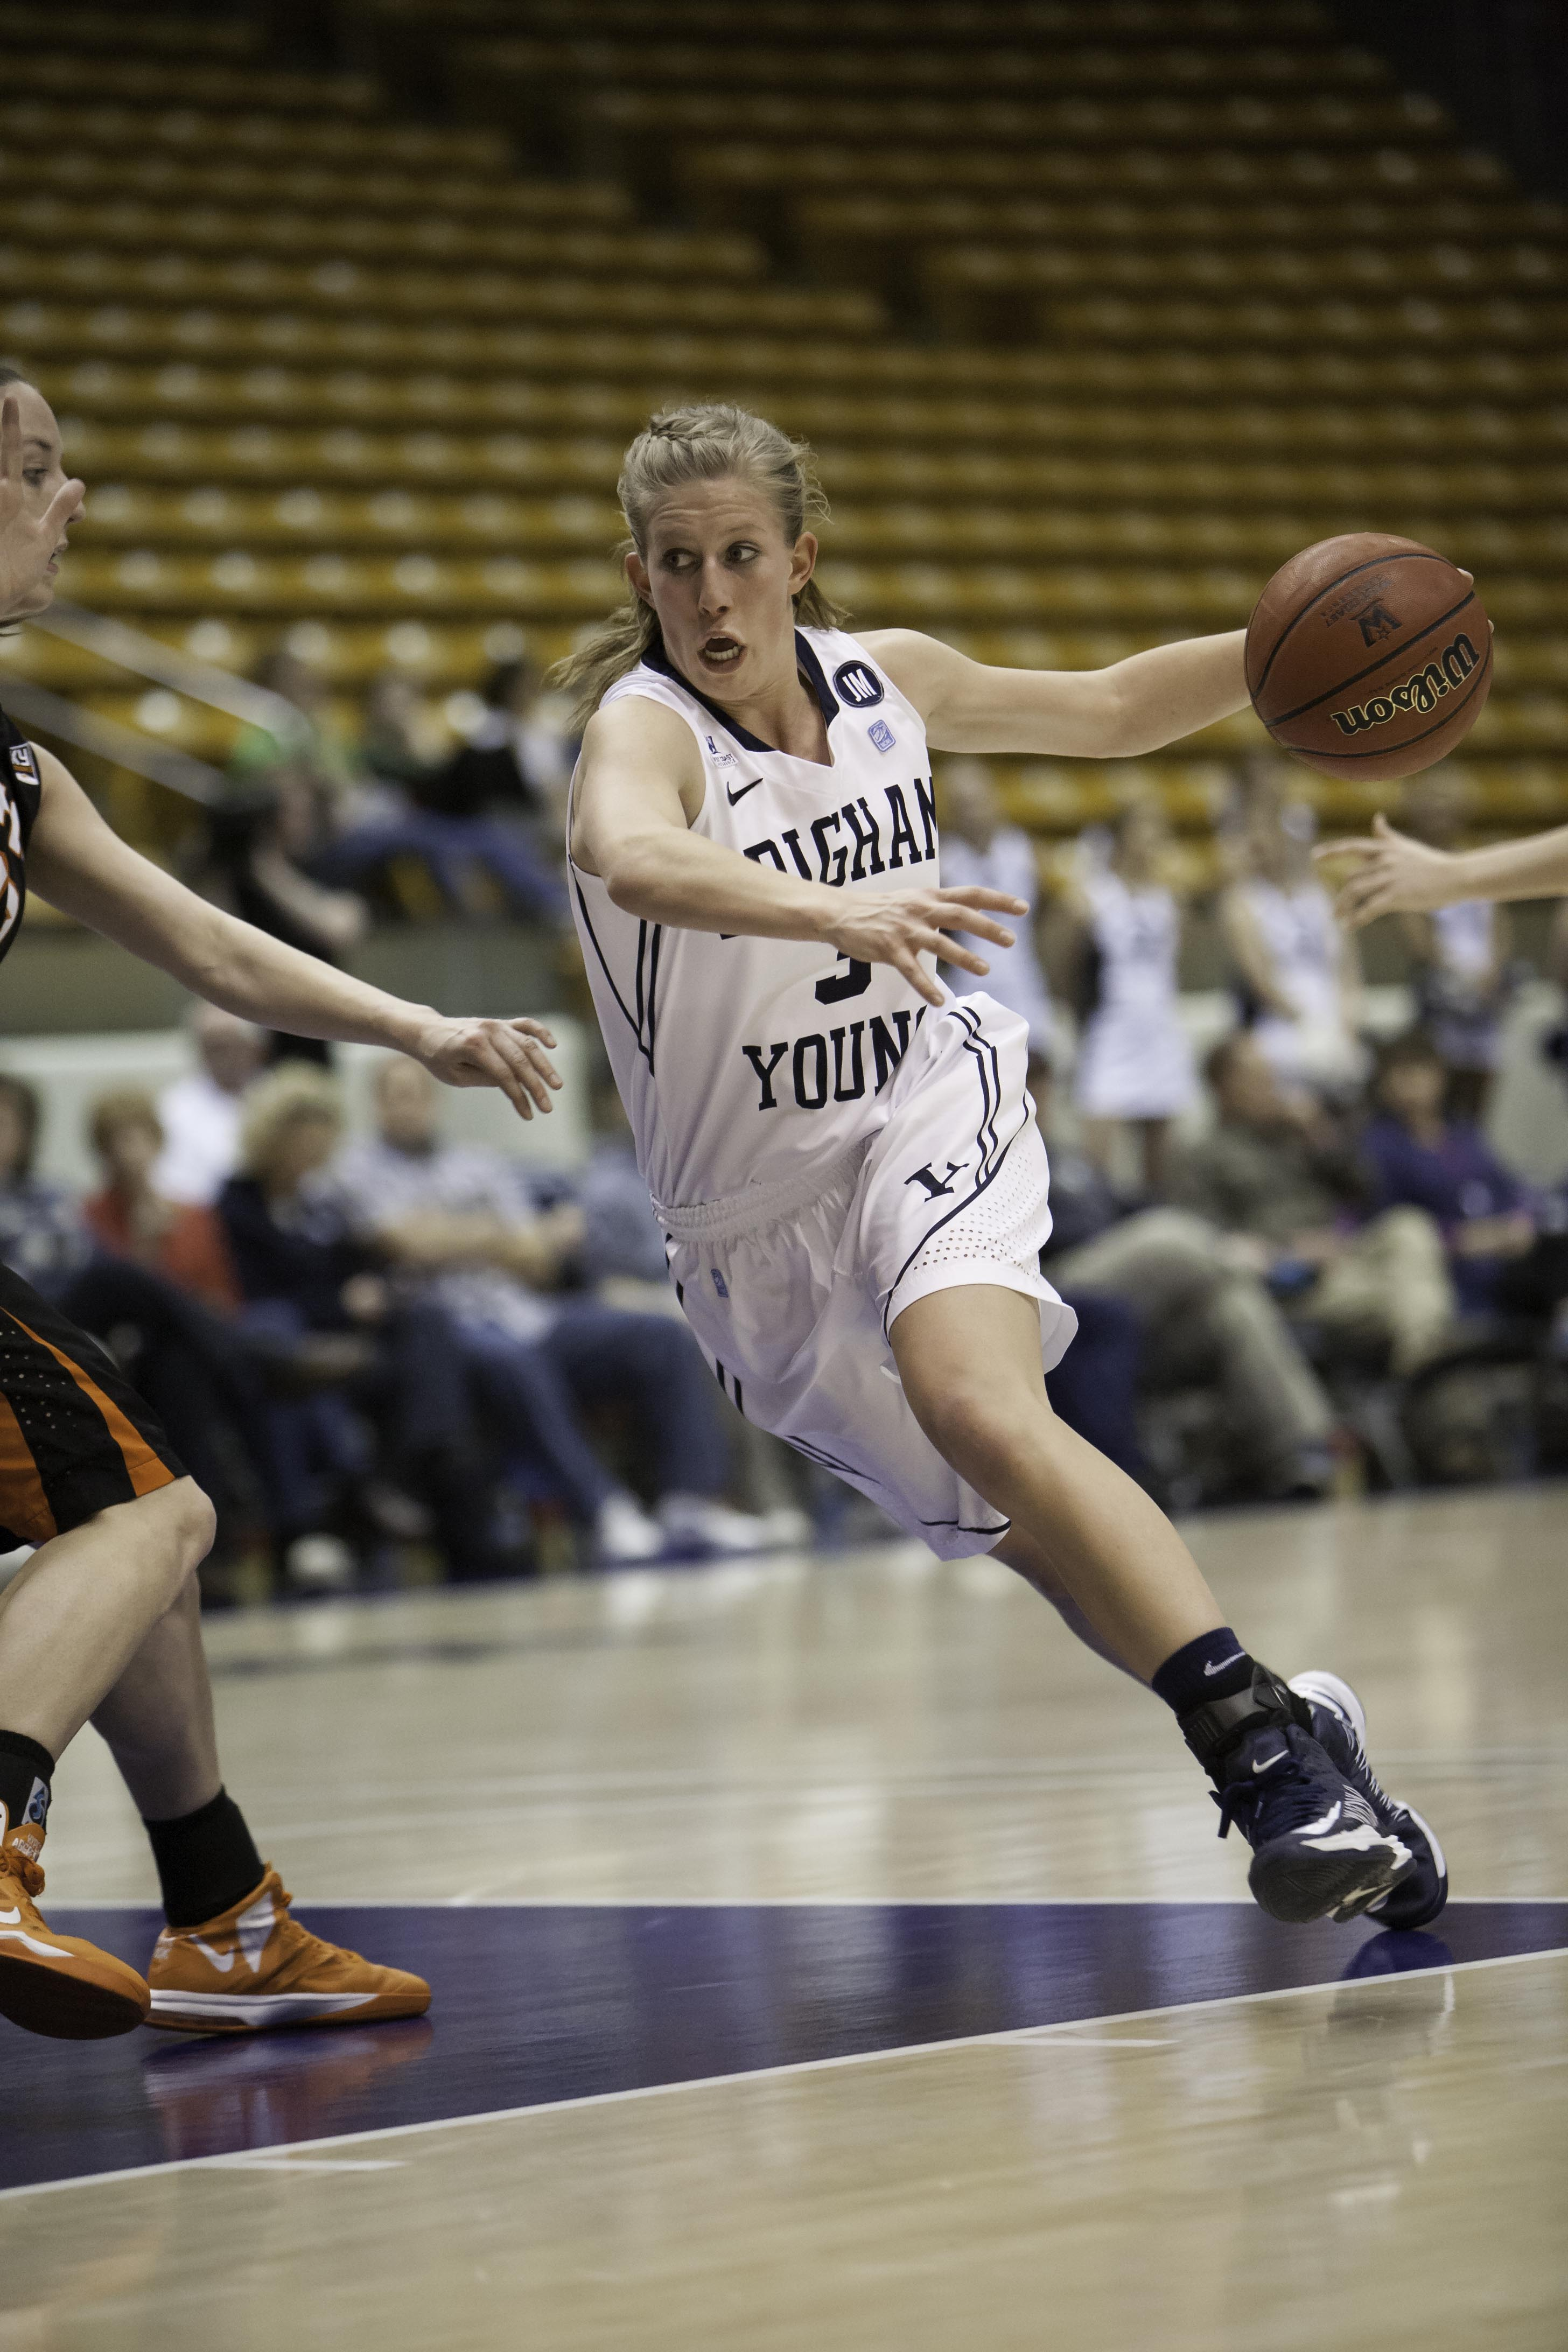 Ashley Garfield dribbles the ball up to the hoop in Thursday's game against Idaho State. (Photo by Elliott Miller)